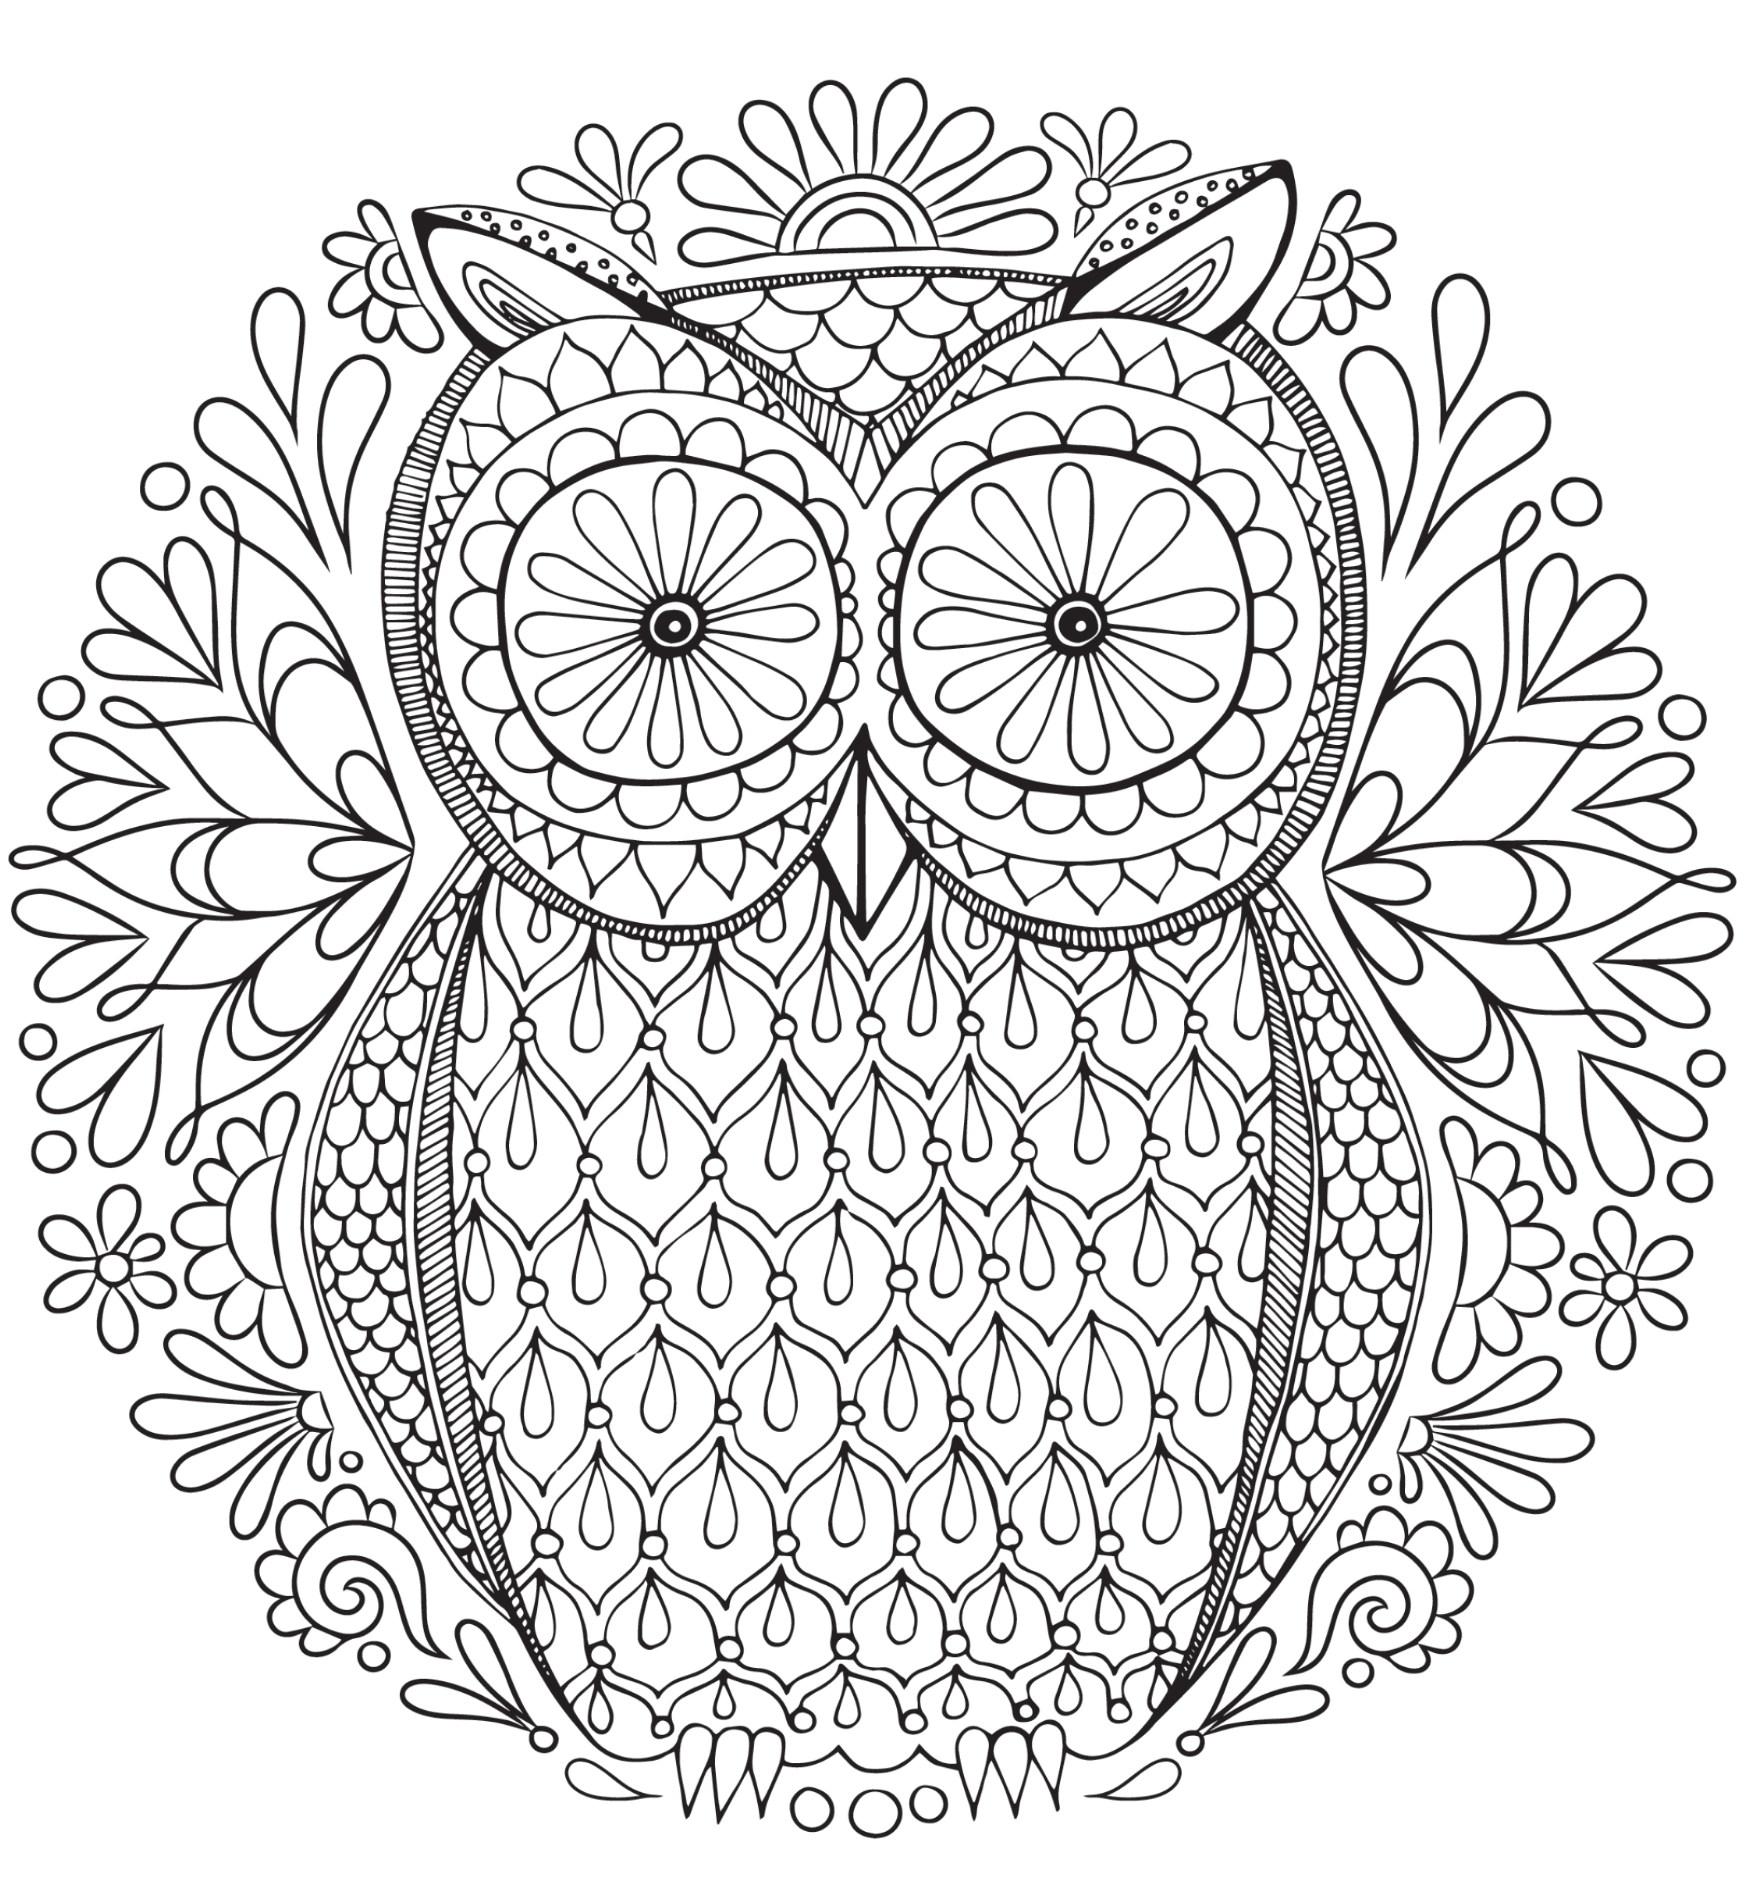 20+ Free Adult Colouring Pages - The Organised Housewife | free online coloring pages for adults animals